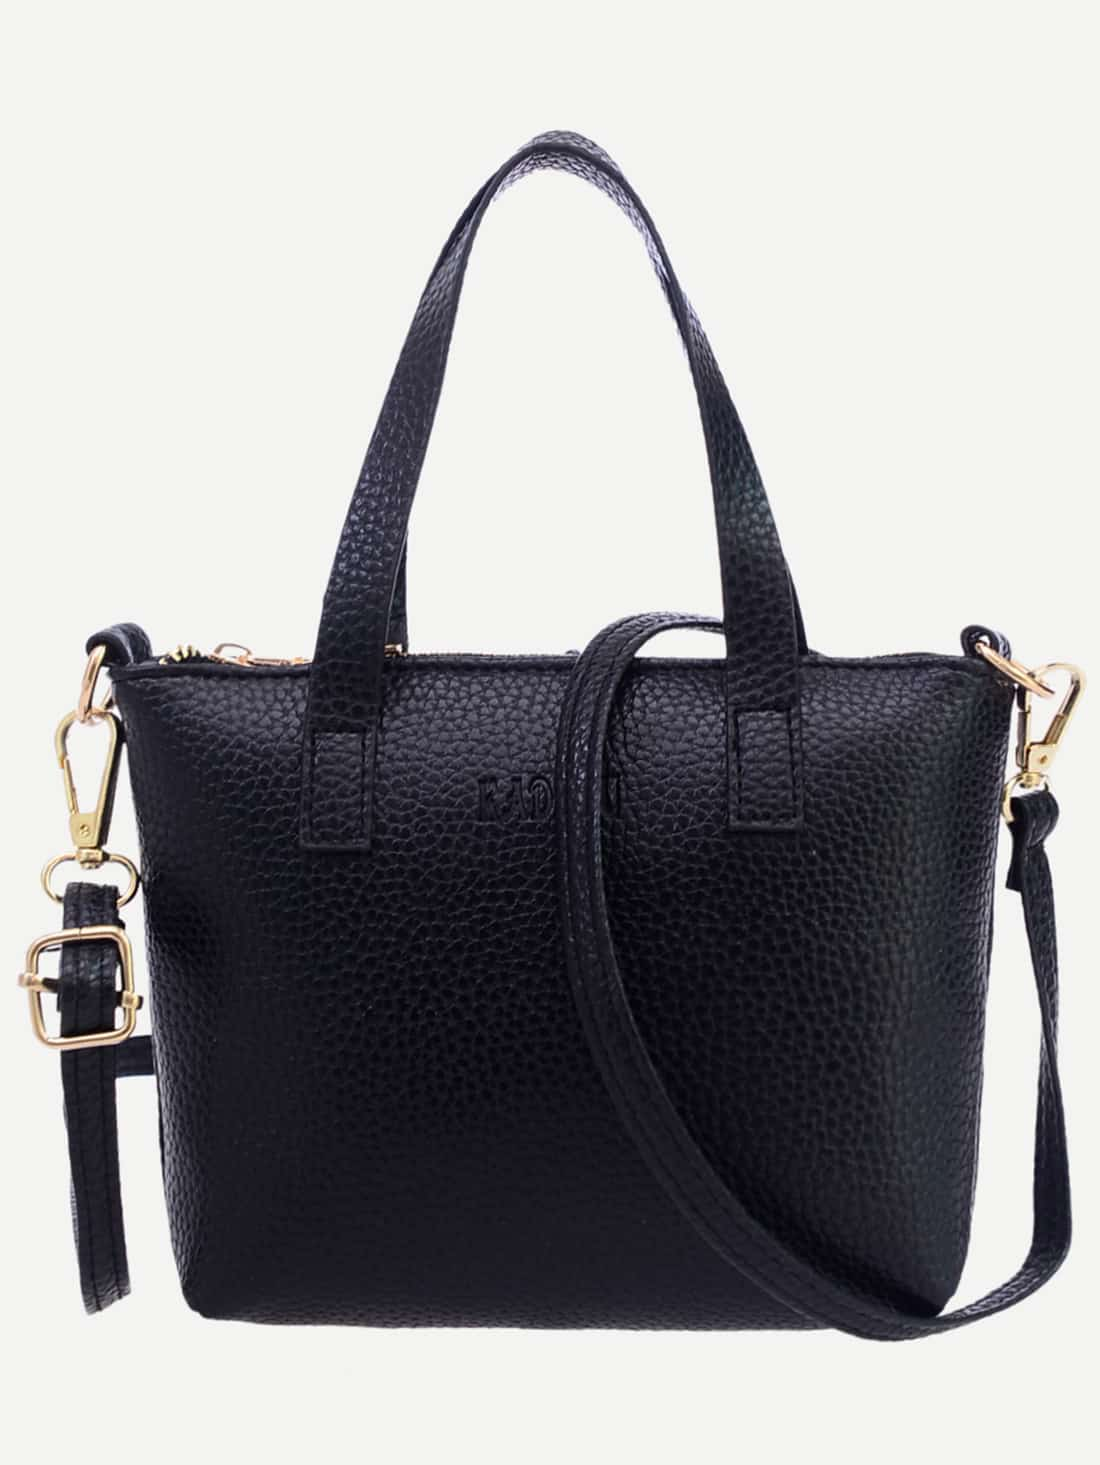 Black Pebbled Faux Leather Tote Bag With Strap